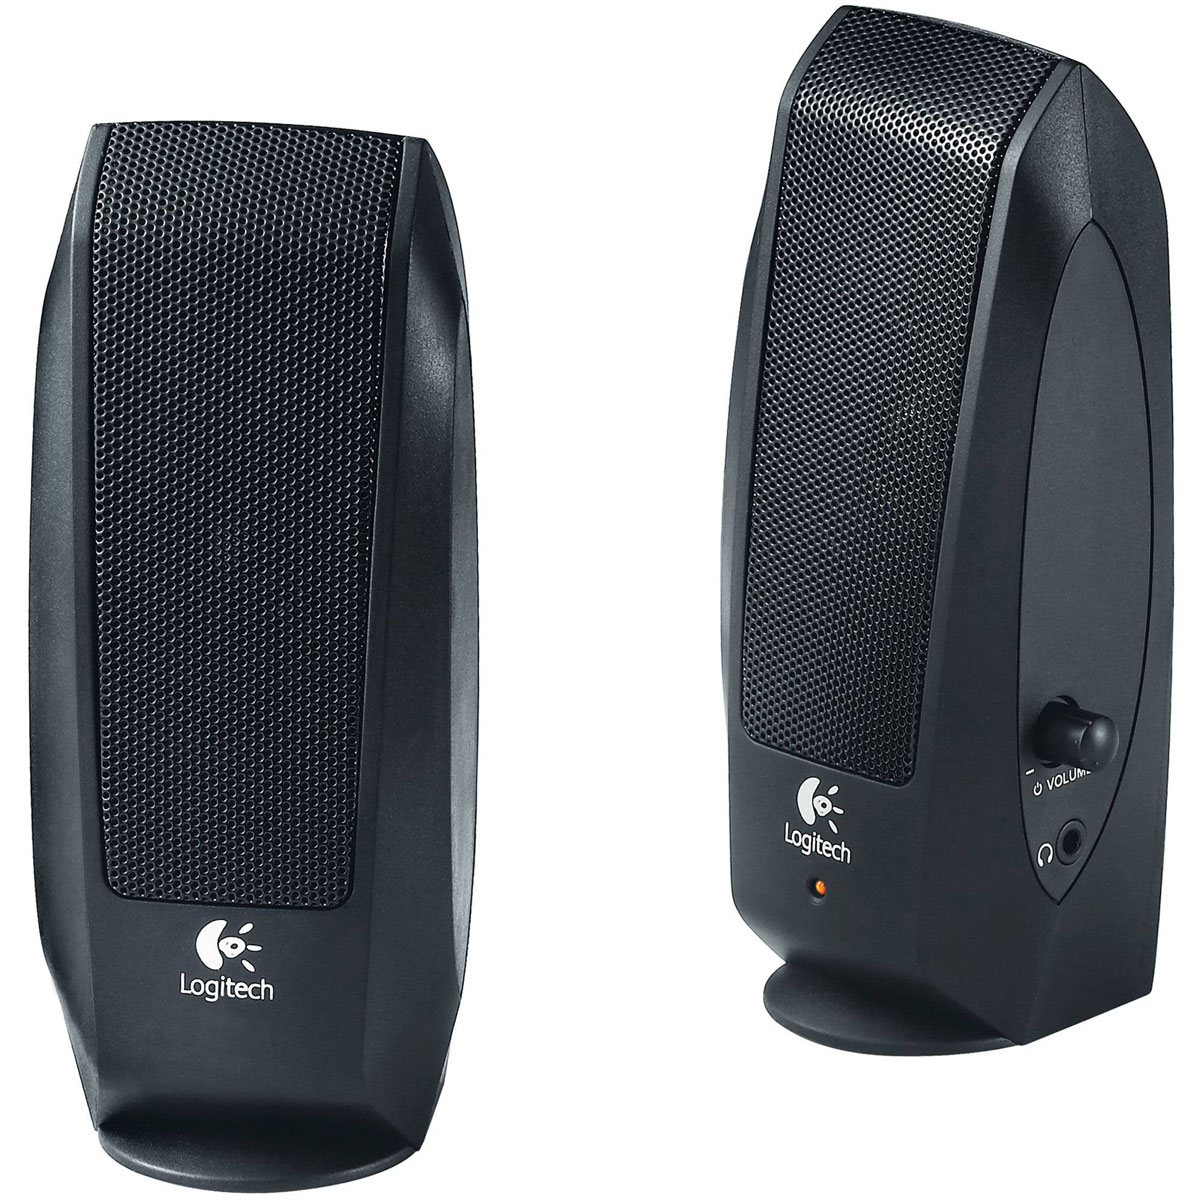 Logitech S120 Speaker System 2.0, Black колонки колонка logitech z523 light speaker system 980 000367 980 000321